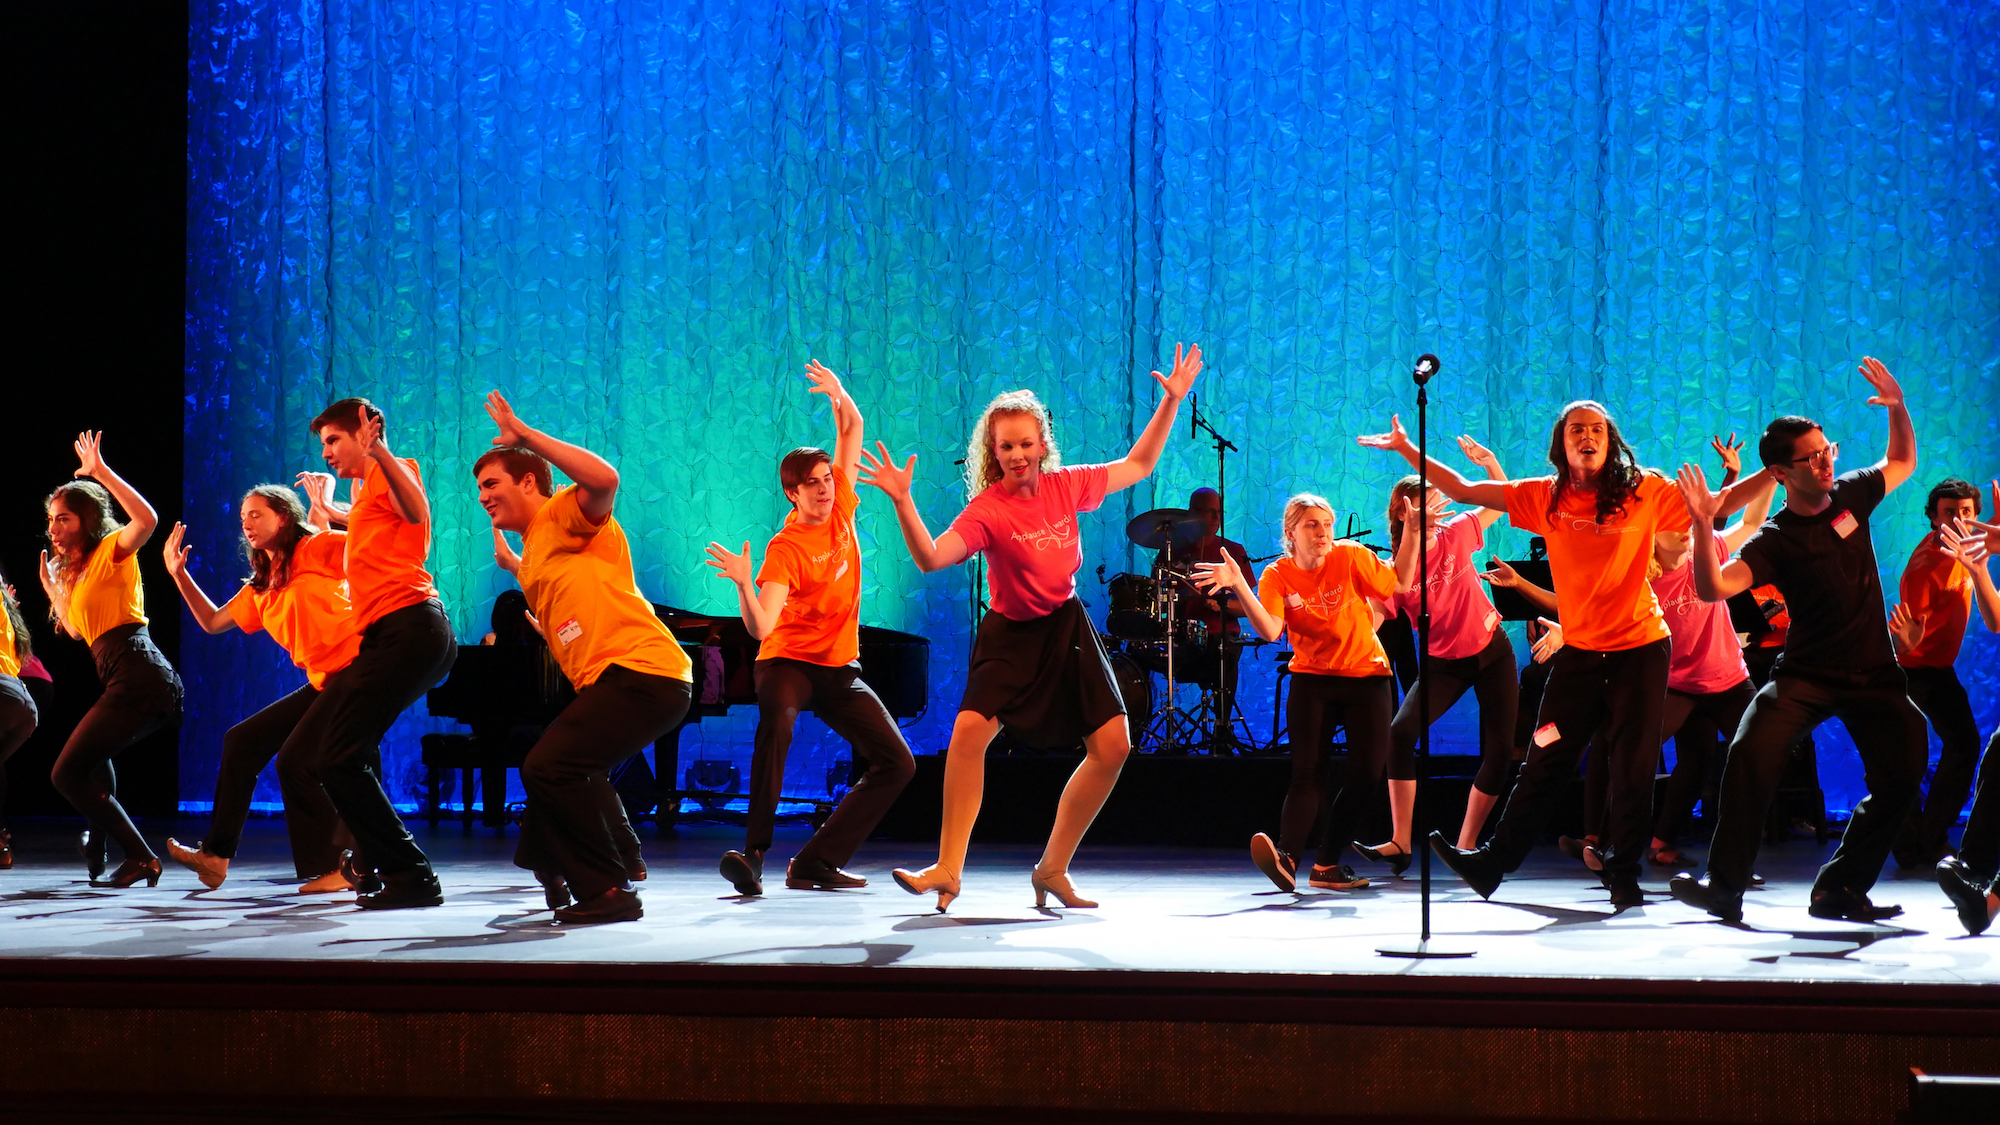 Applause Awards Celebrate High School Musical Theater